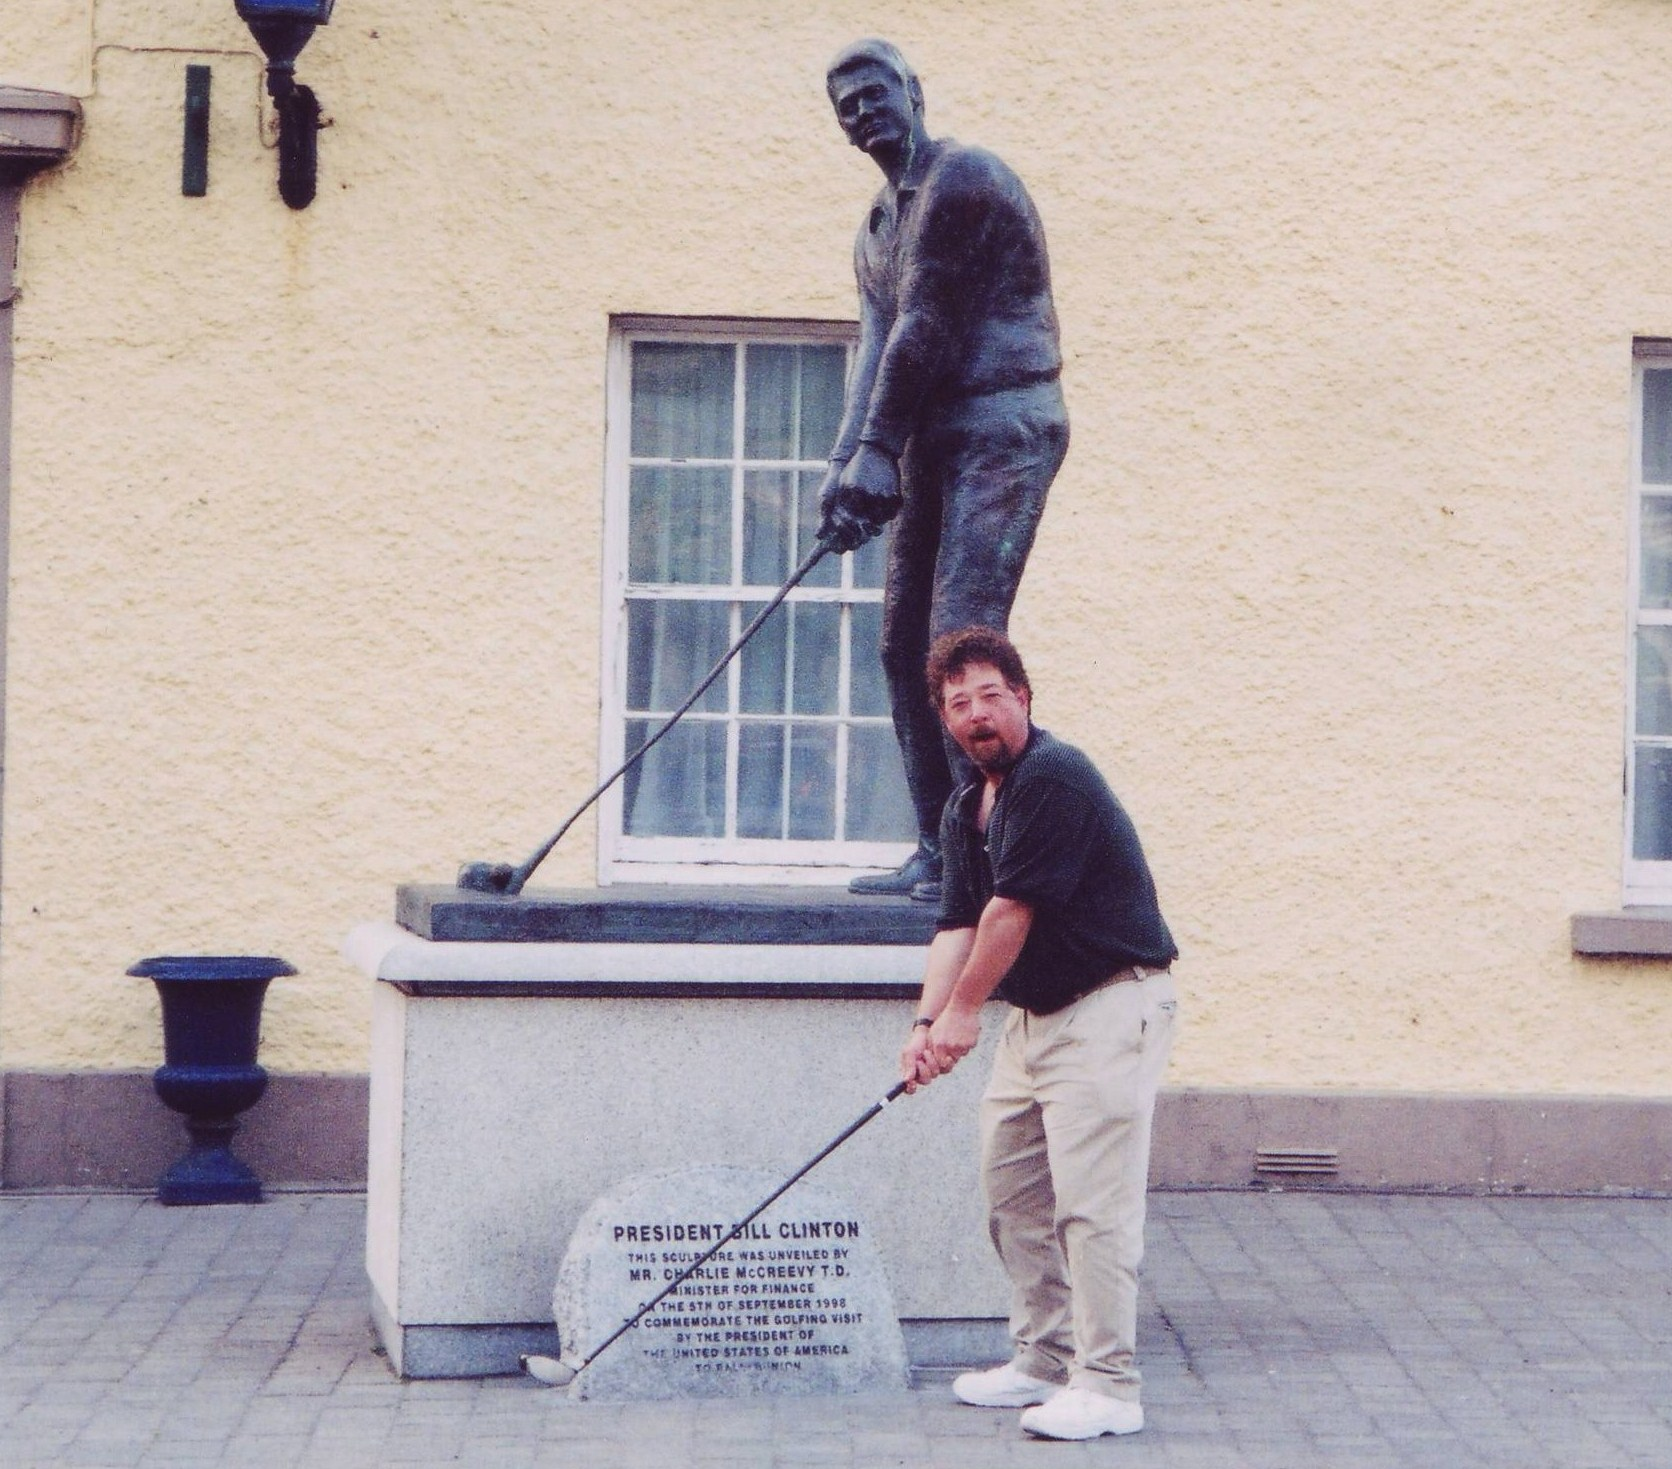 Here's me and Bill Clinton in the town of Ballybunion. Now all I need is a statue of Dwight D. Eisenhower.